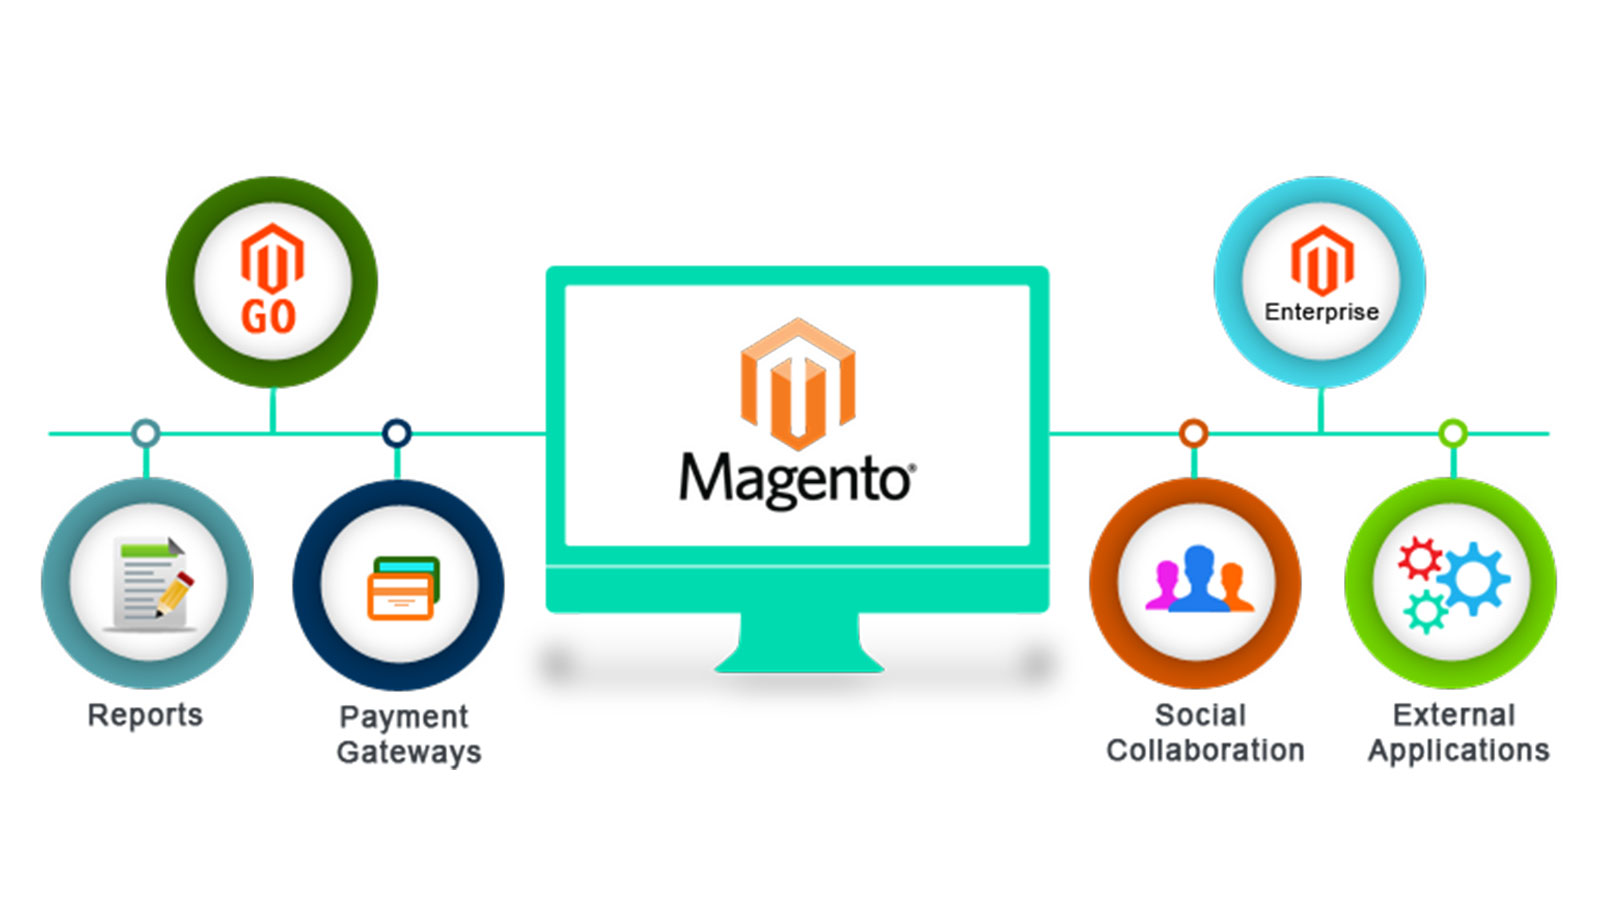 Magento Development: The new age E-Commerce platform